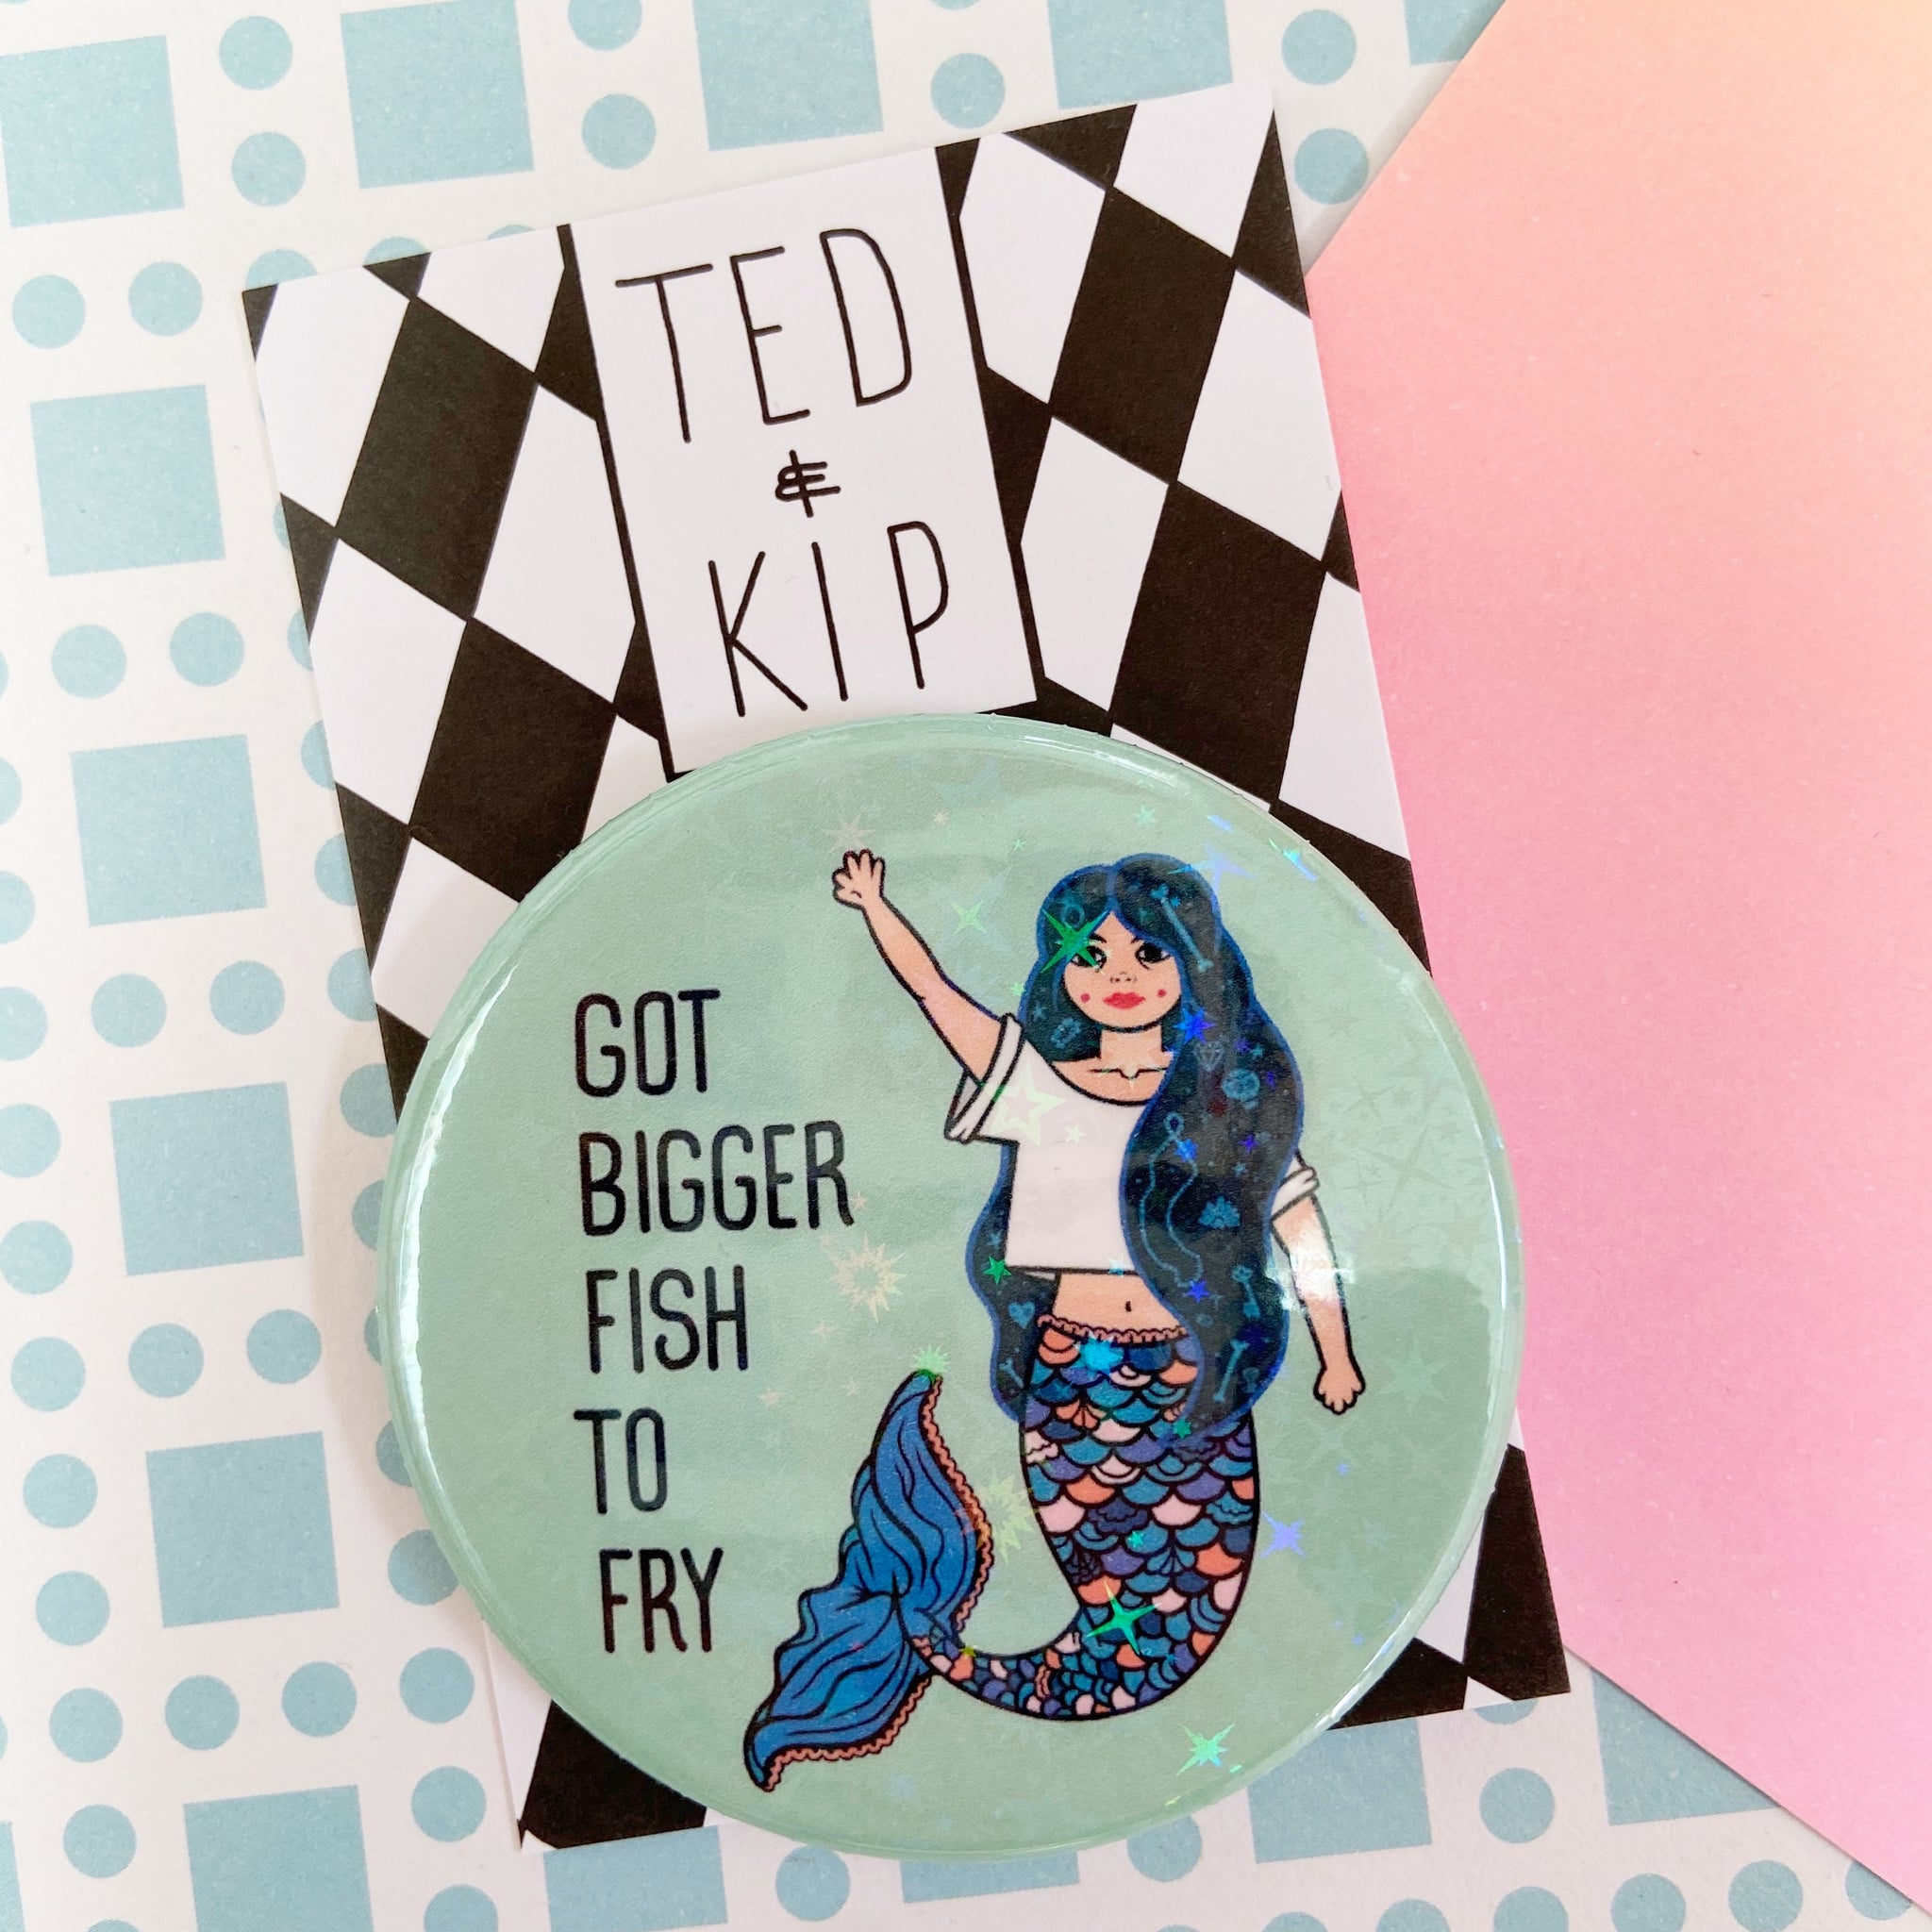 Bigger Fish To Fry Mermaid Holographic Button Badge